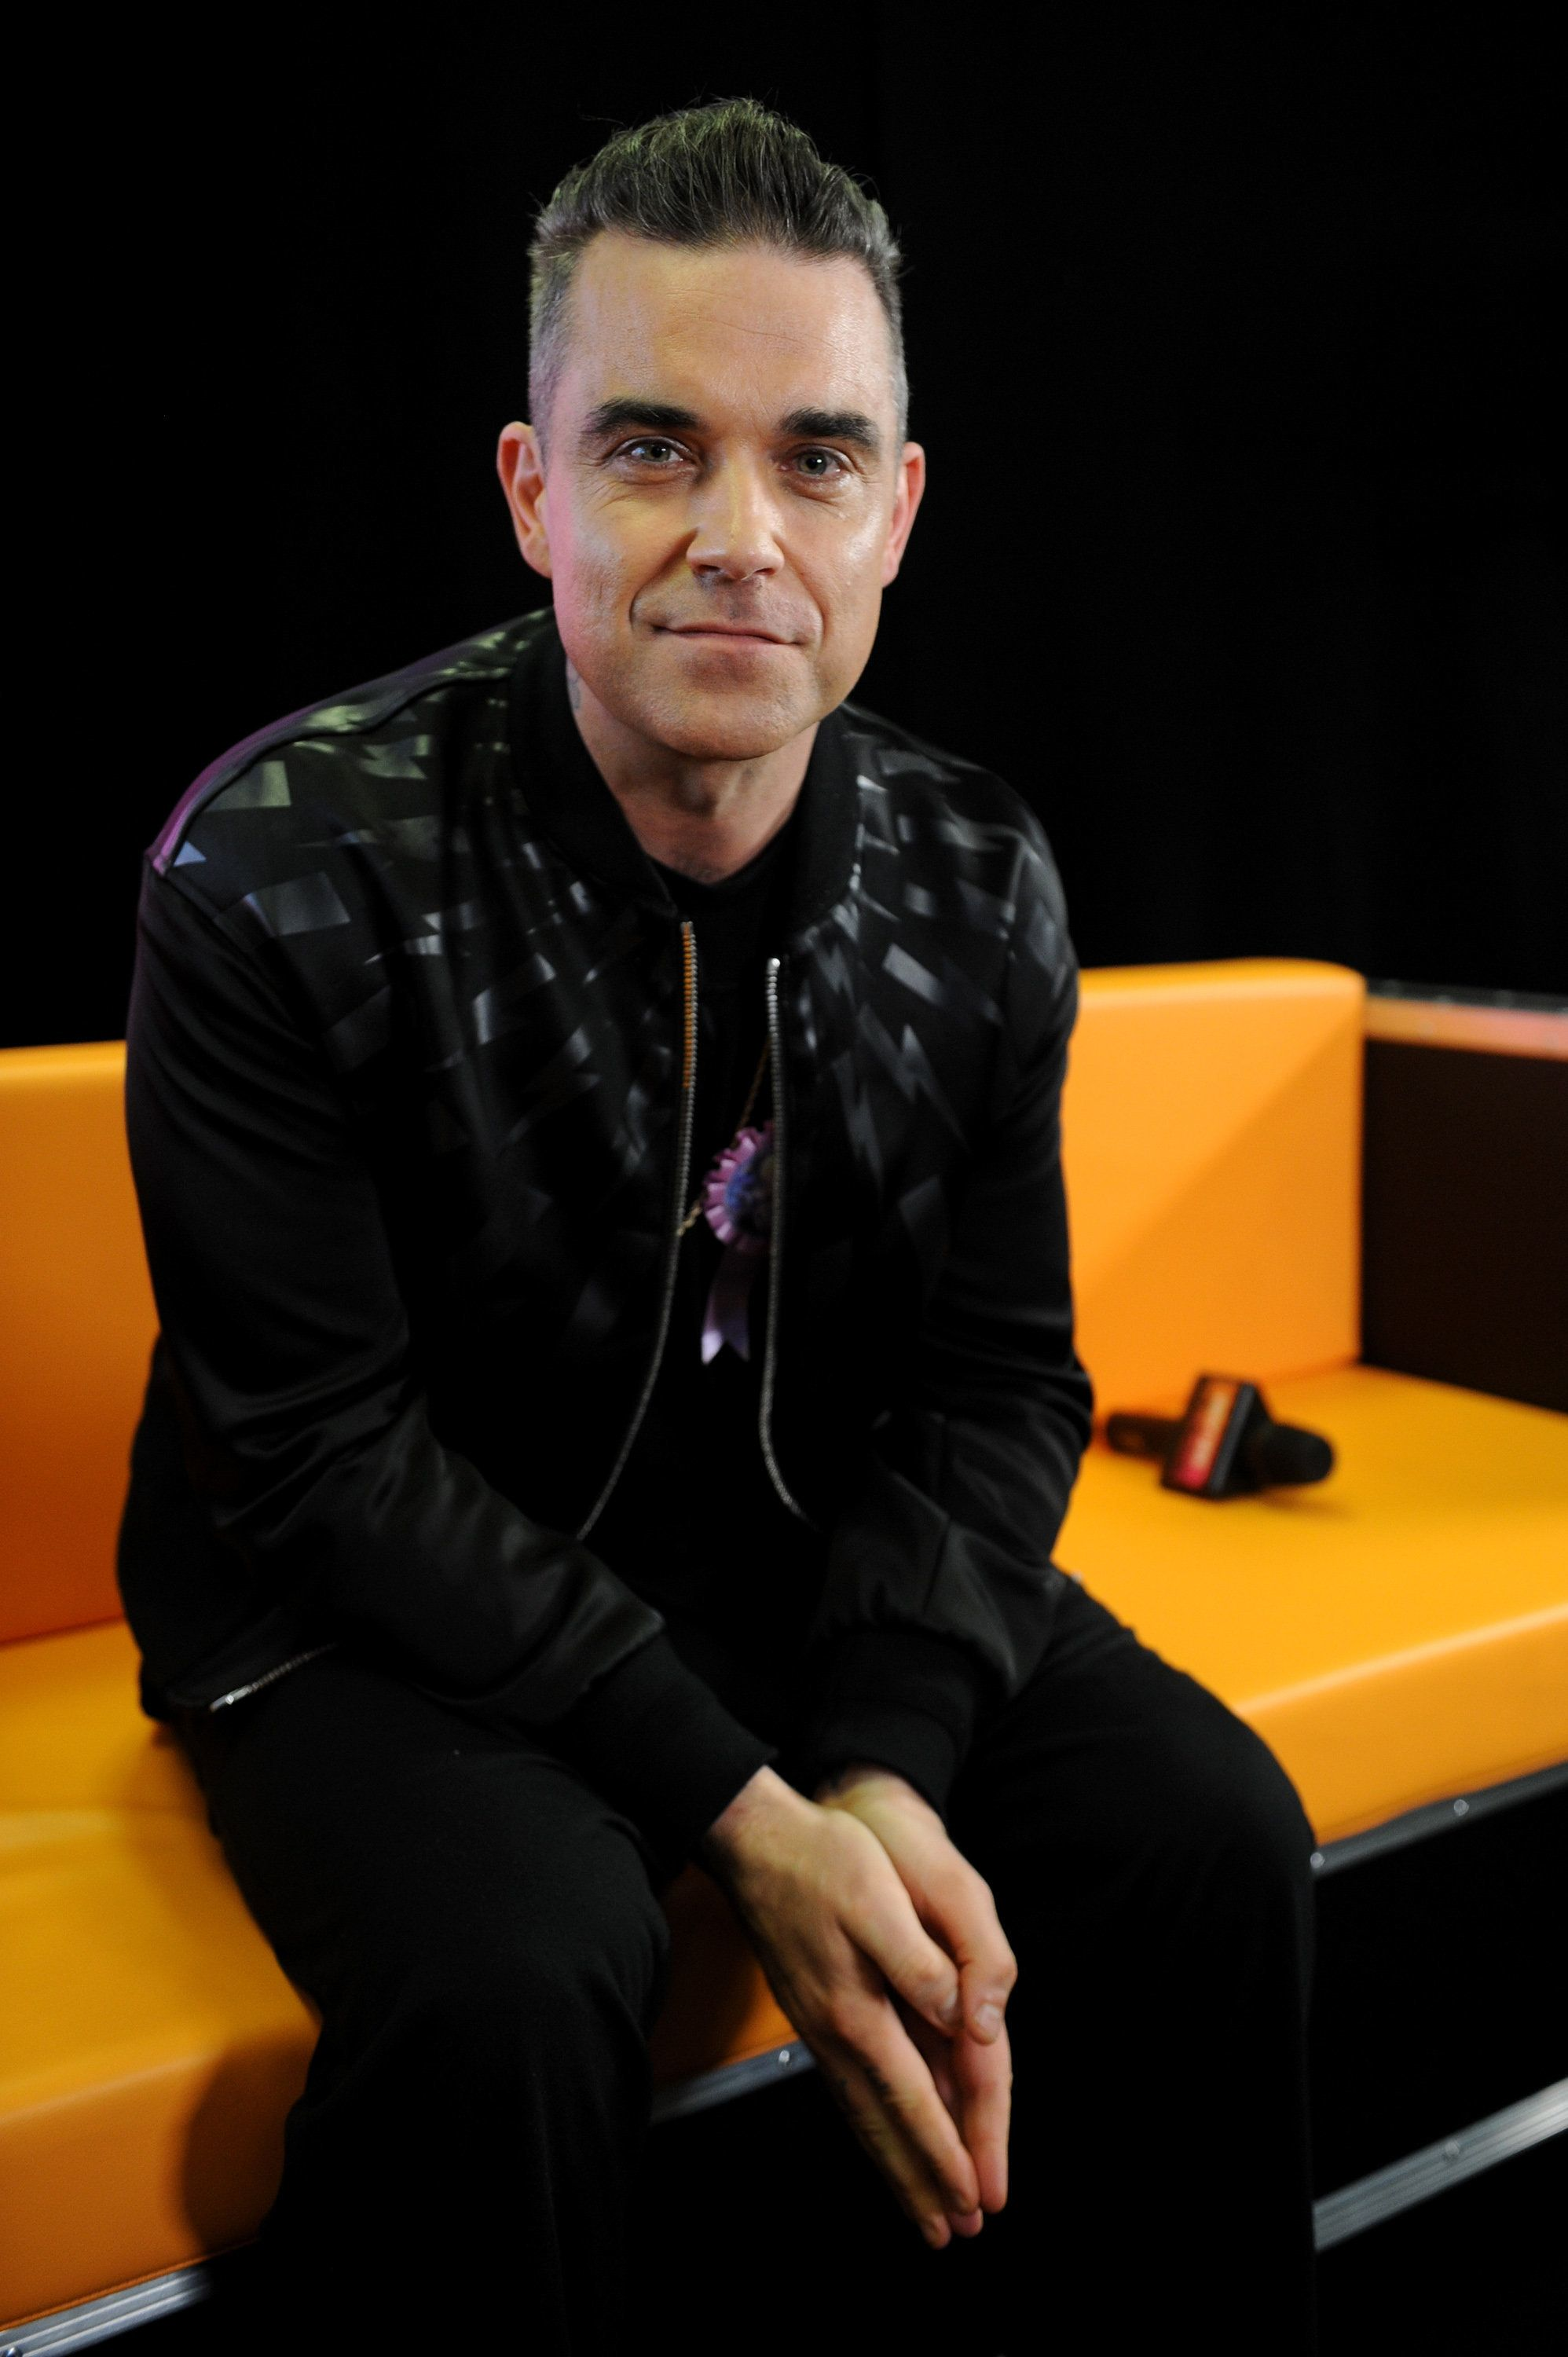 Robbie Claims Confesses He 'Smoked A Spliff' At Buckingham Palace